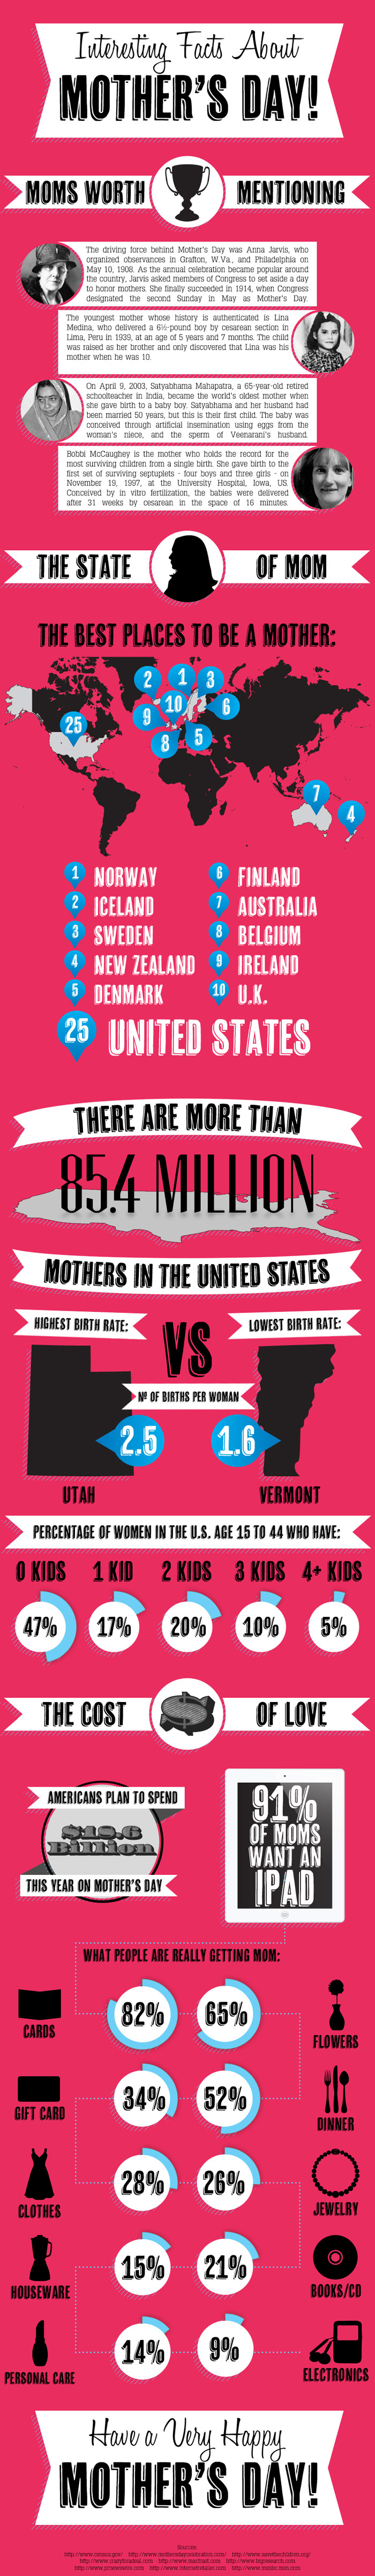 Mothers-Day-infographic